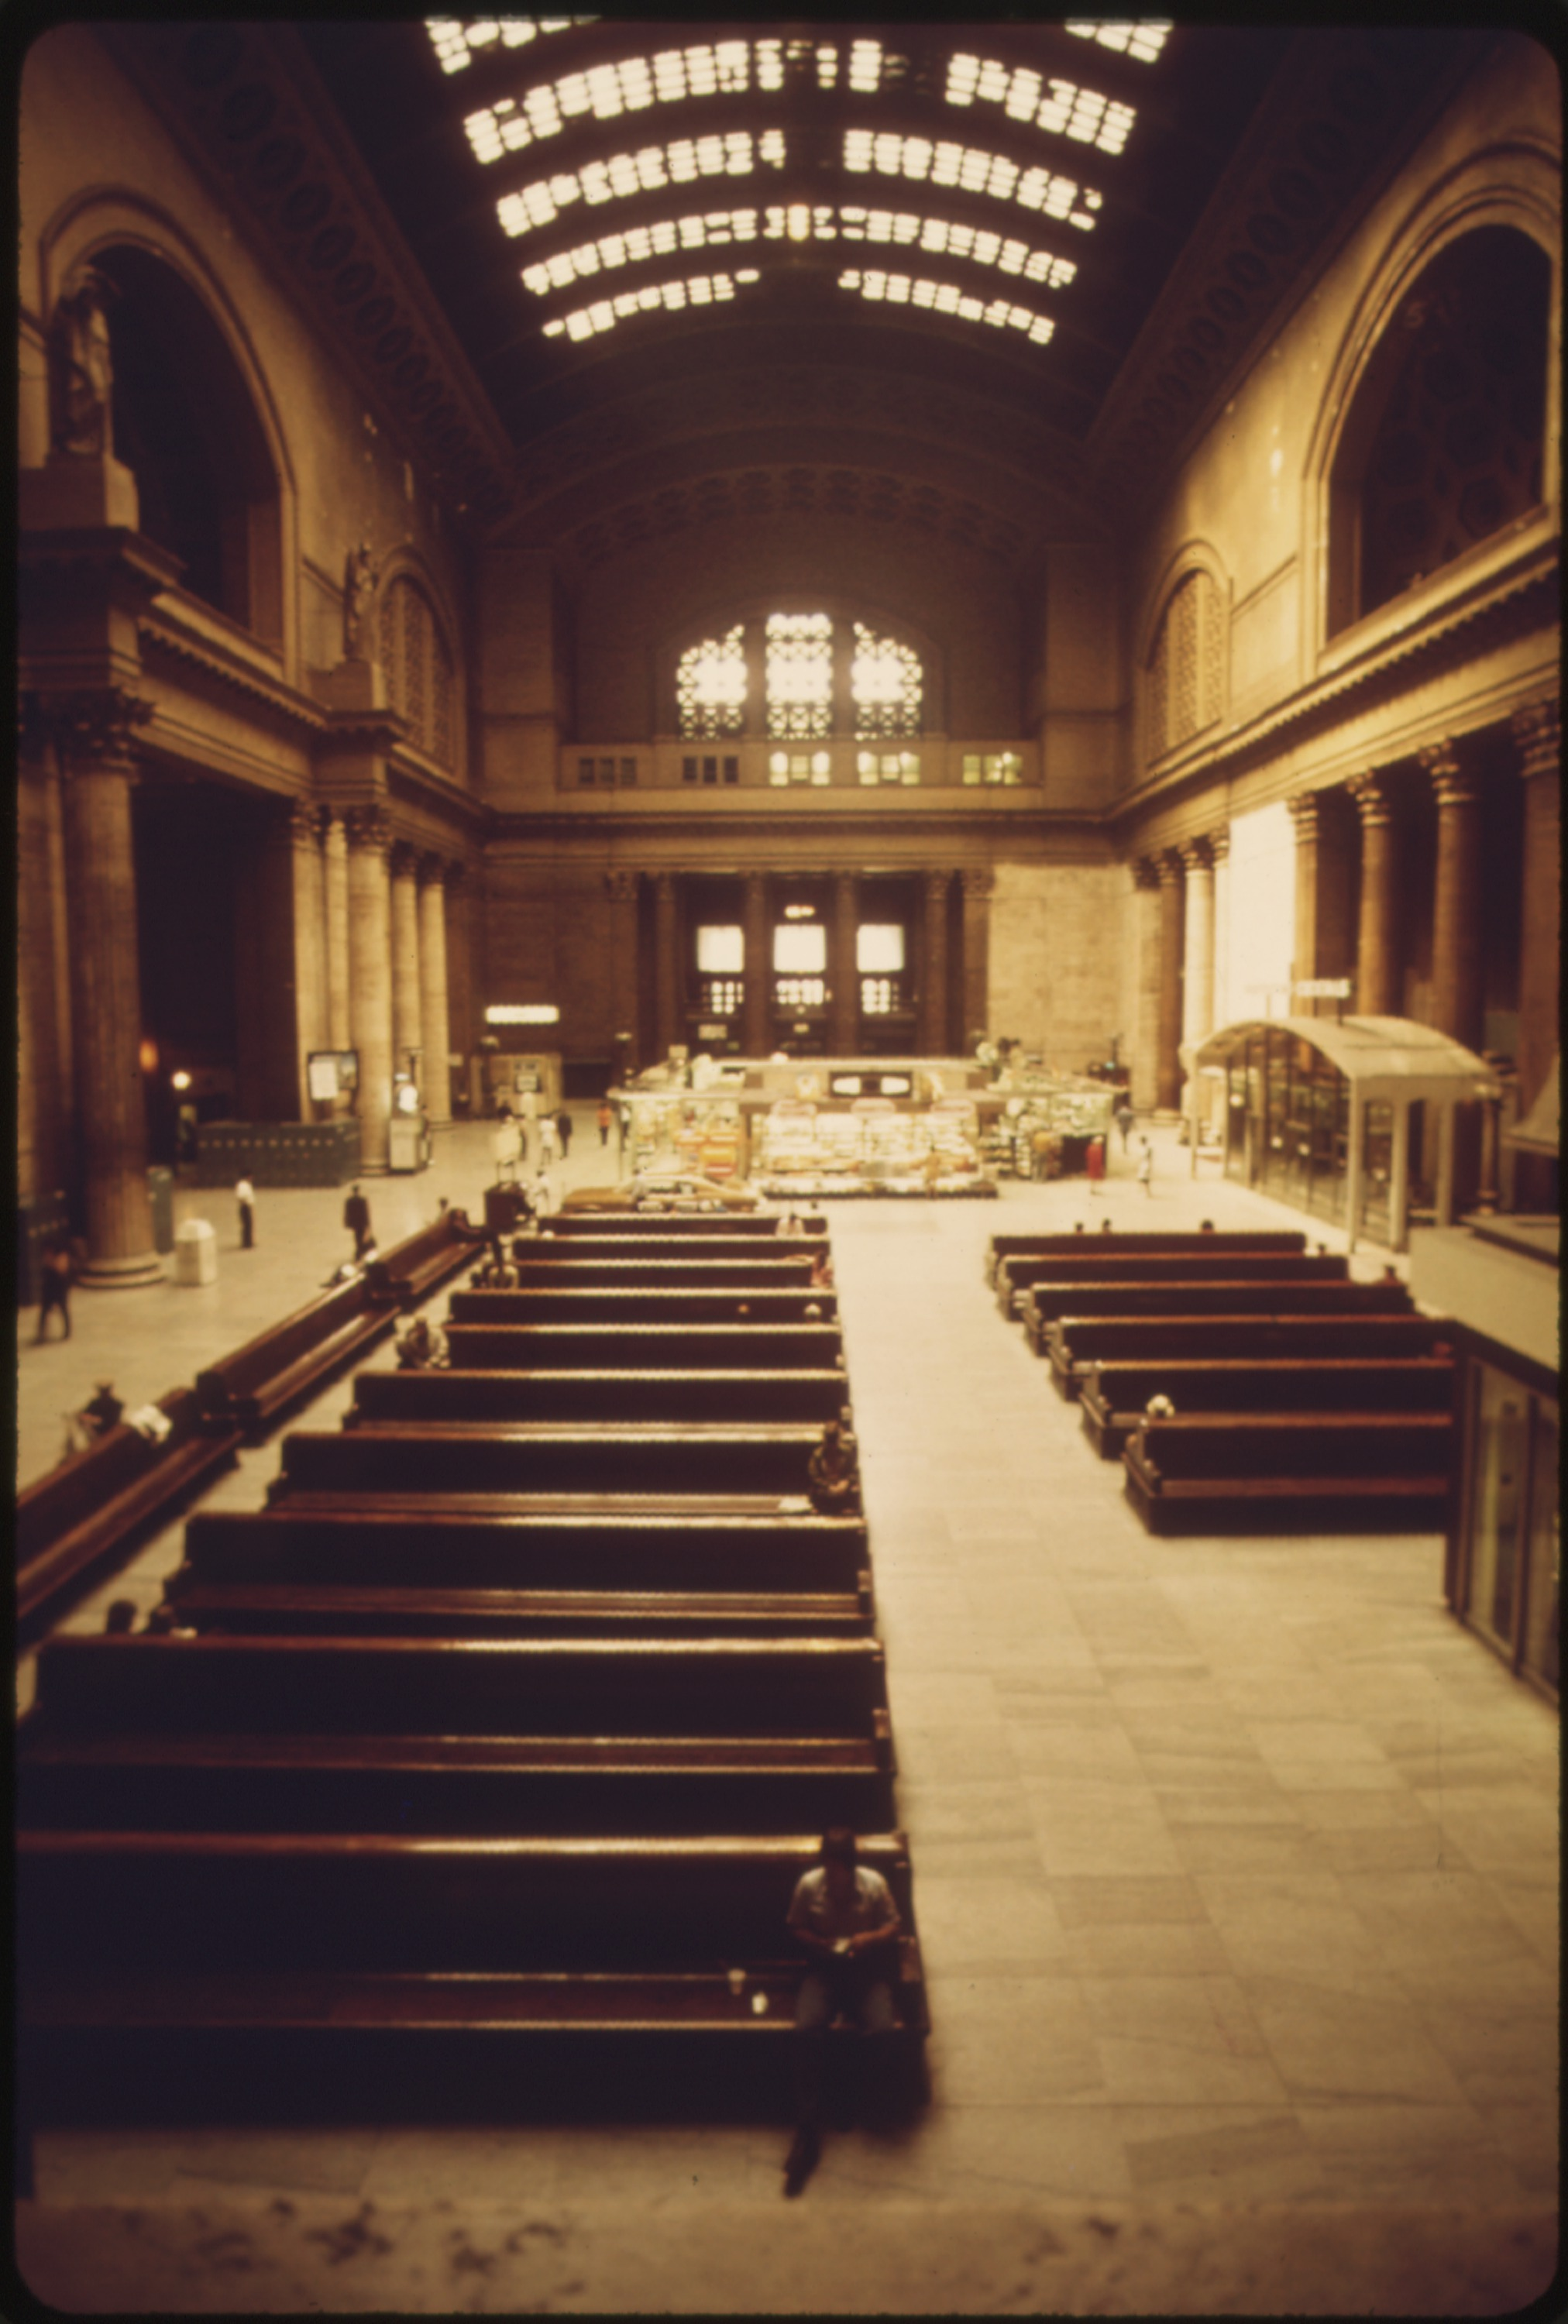 MASSIVE_WOODEN_BENCHES_FIT_IN_WITH_THE_ARCHITECTURE_OF_THE_INTERIOR_OF_CHICAGO'S_UNION_STATION._THE_TERMINAL_IS_ONE..._-_NARA_-_556069